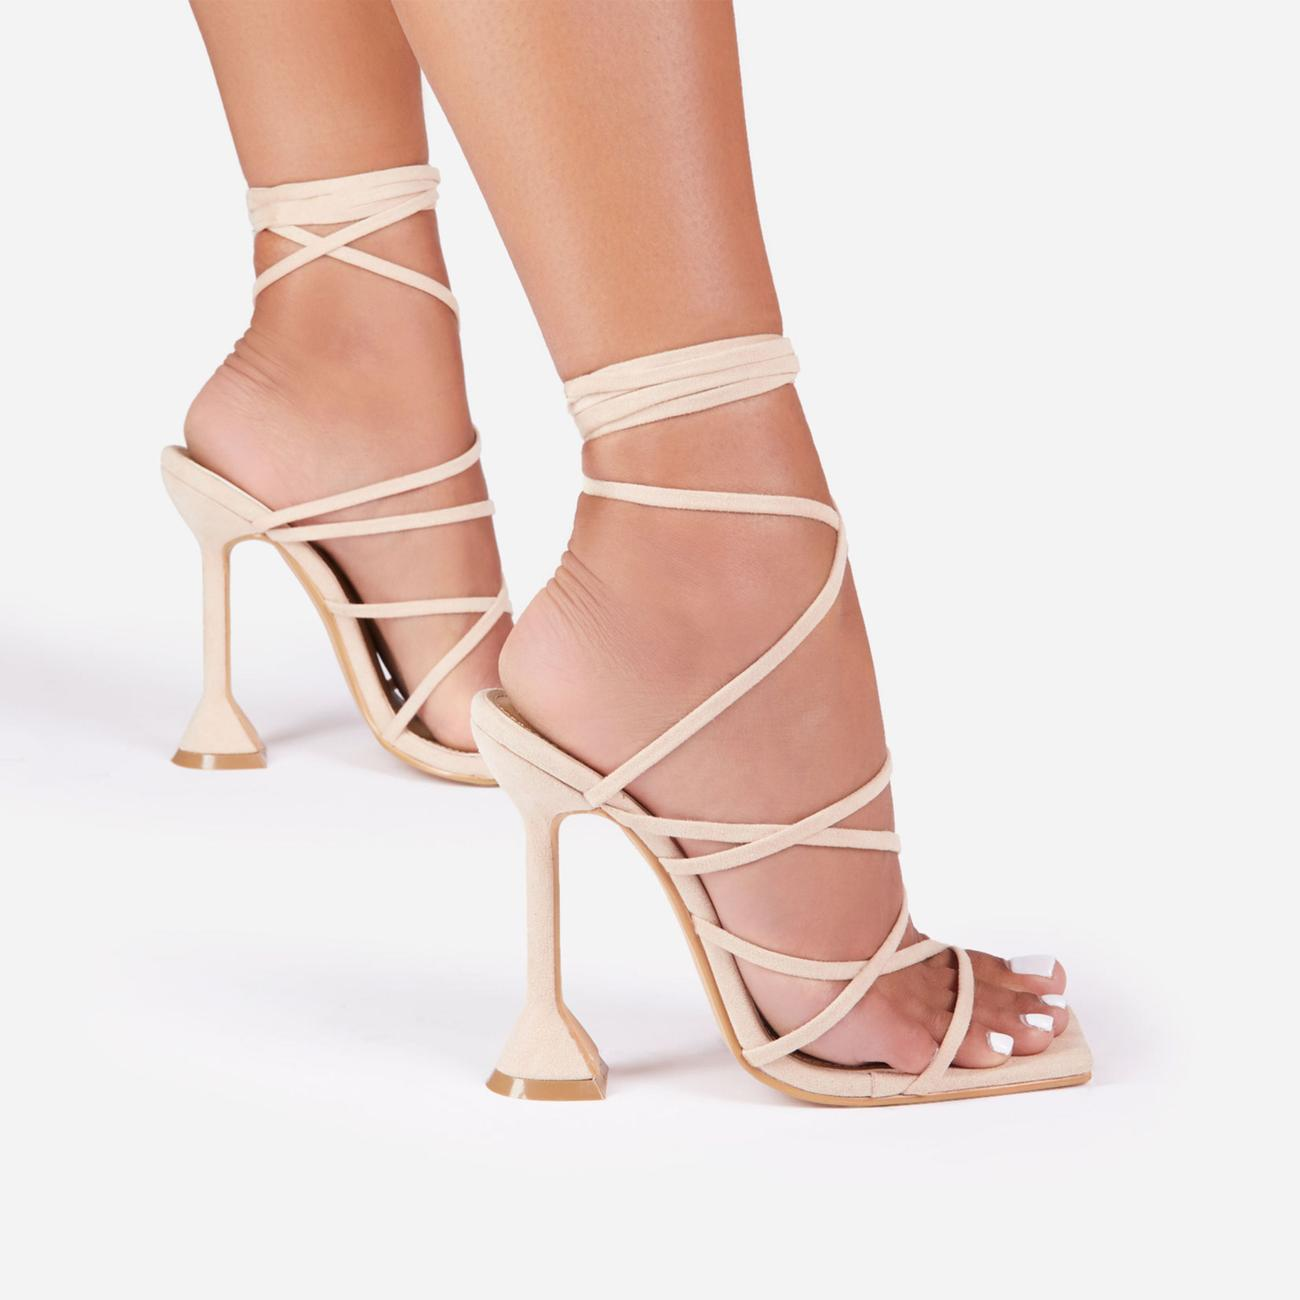 Influence Strappy Lace Up Square Toe Pyramid Heel In Nude Faux Suede Image 4